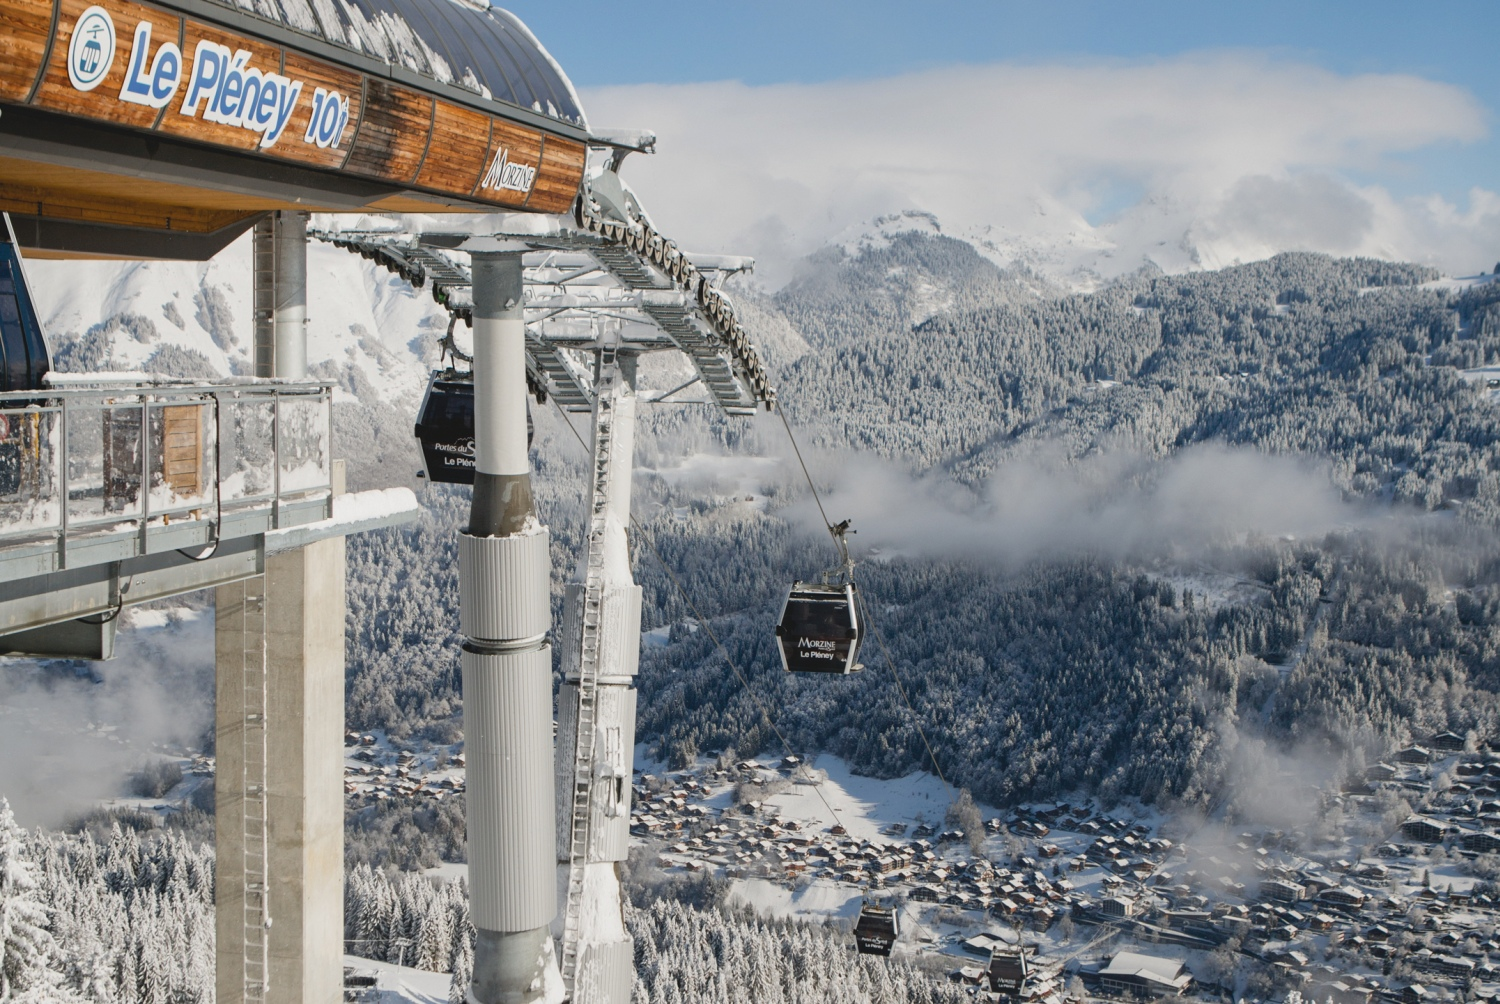 Lifts_in_Morzine_France_CREDIT_iStock.jpg